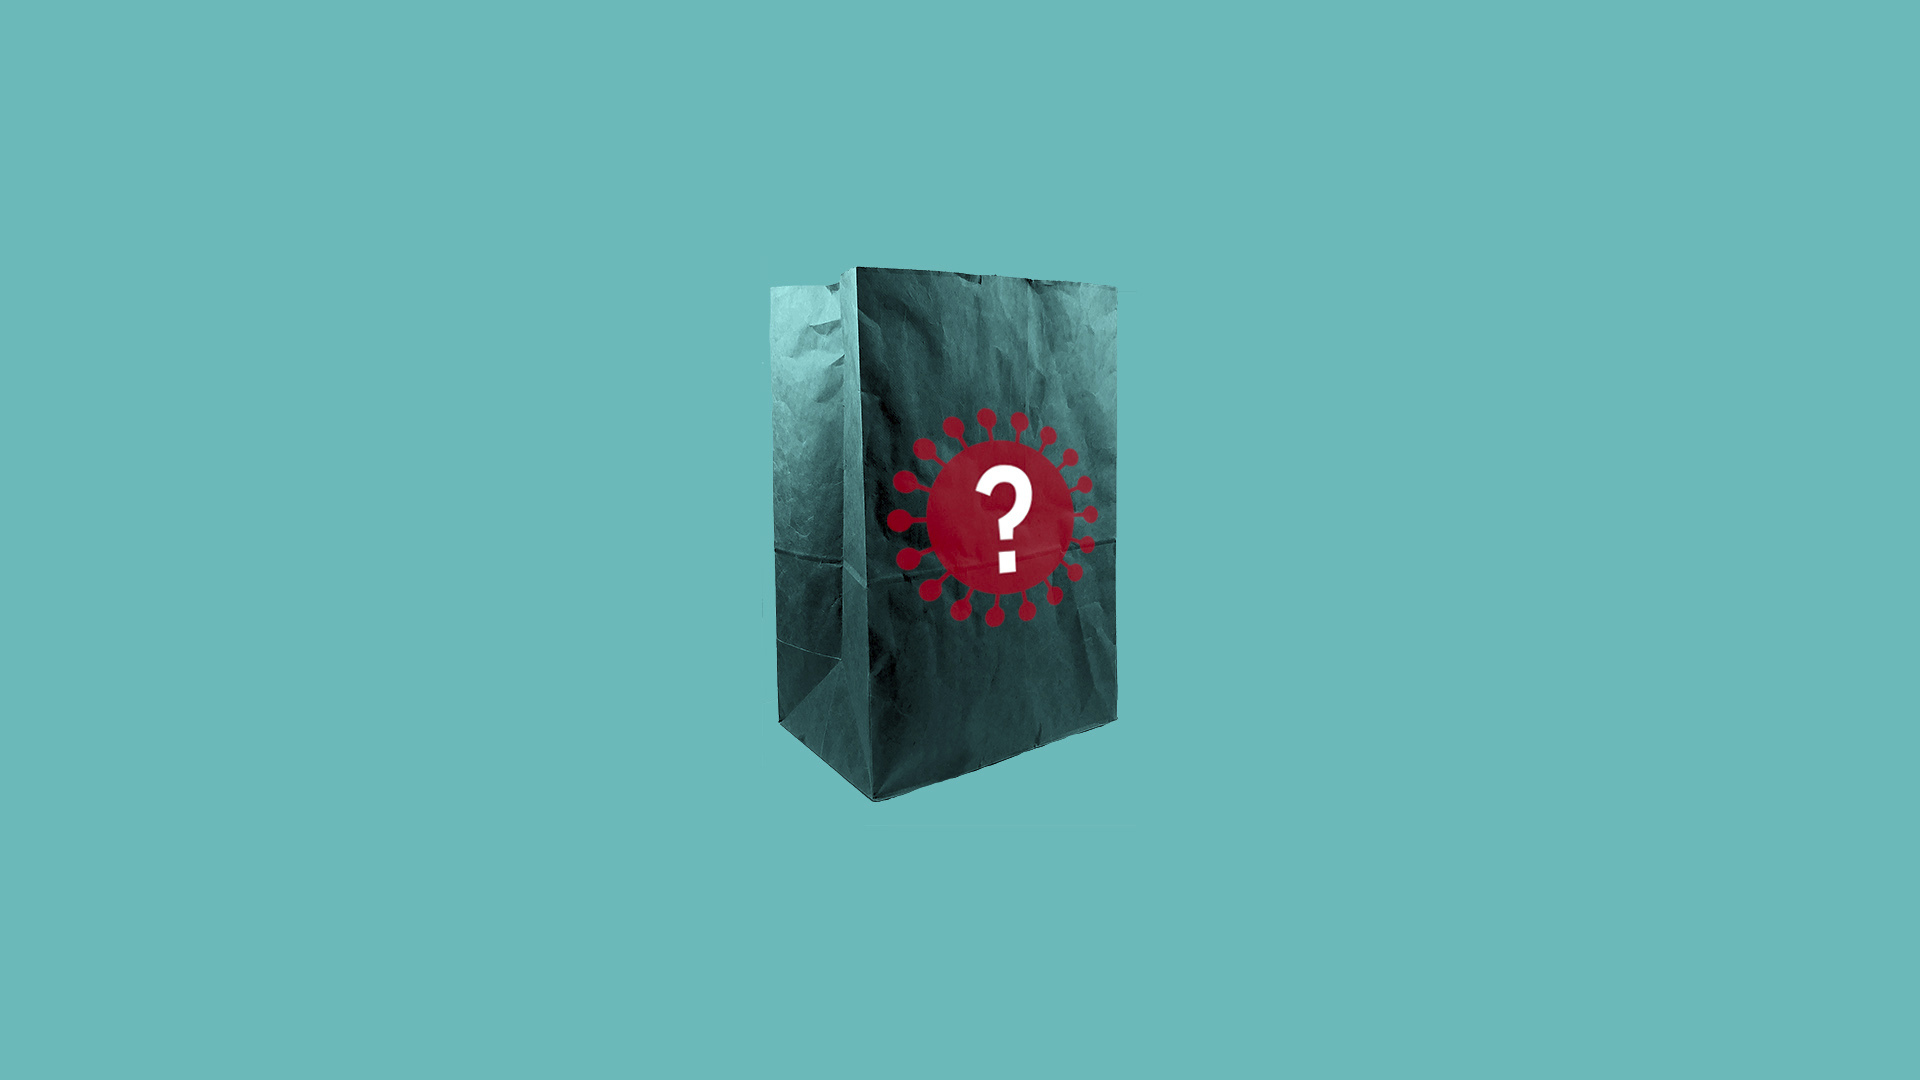 Virus Outbreak-Viral Questions-Surfaces